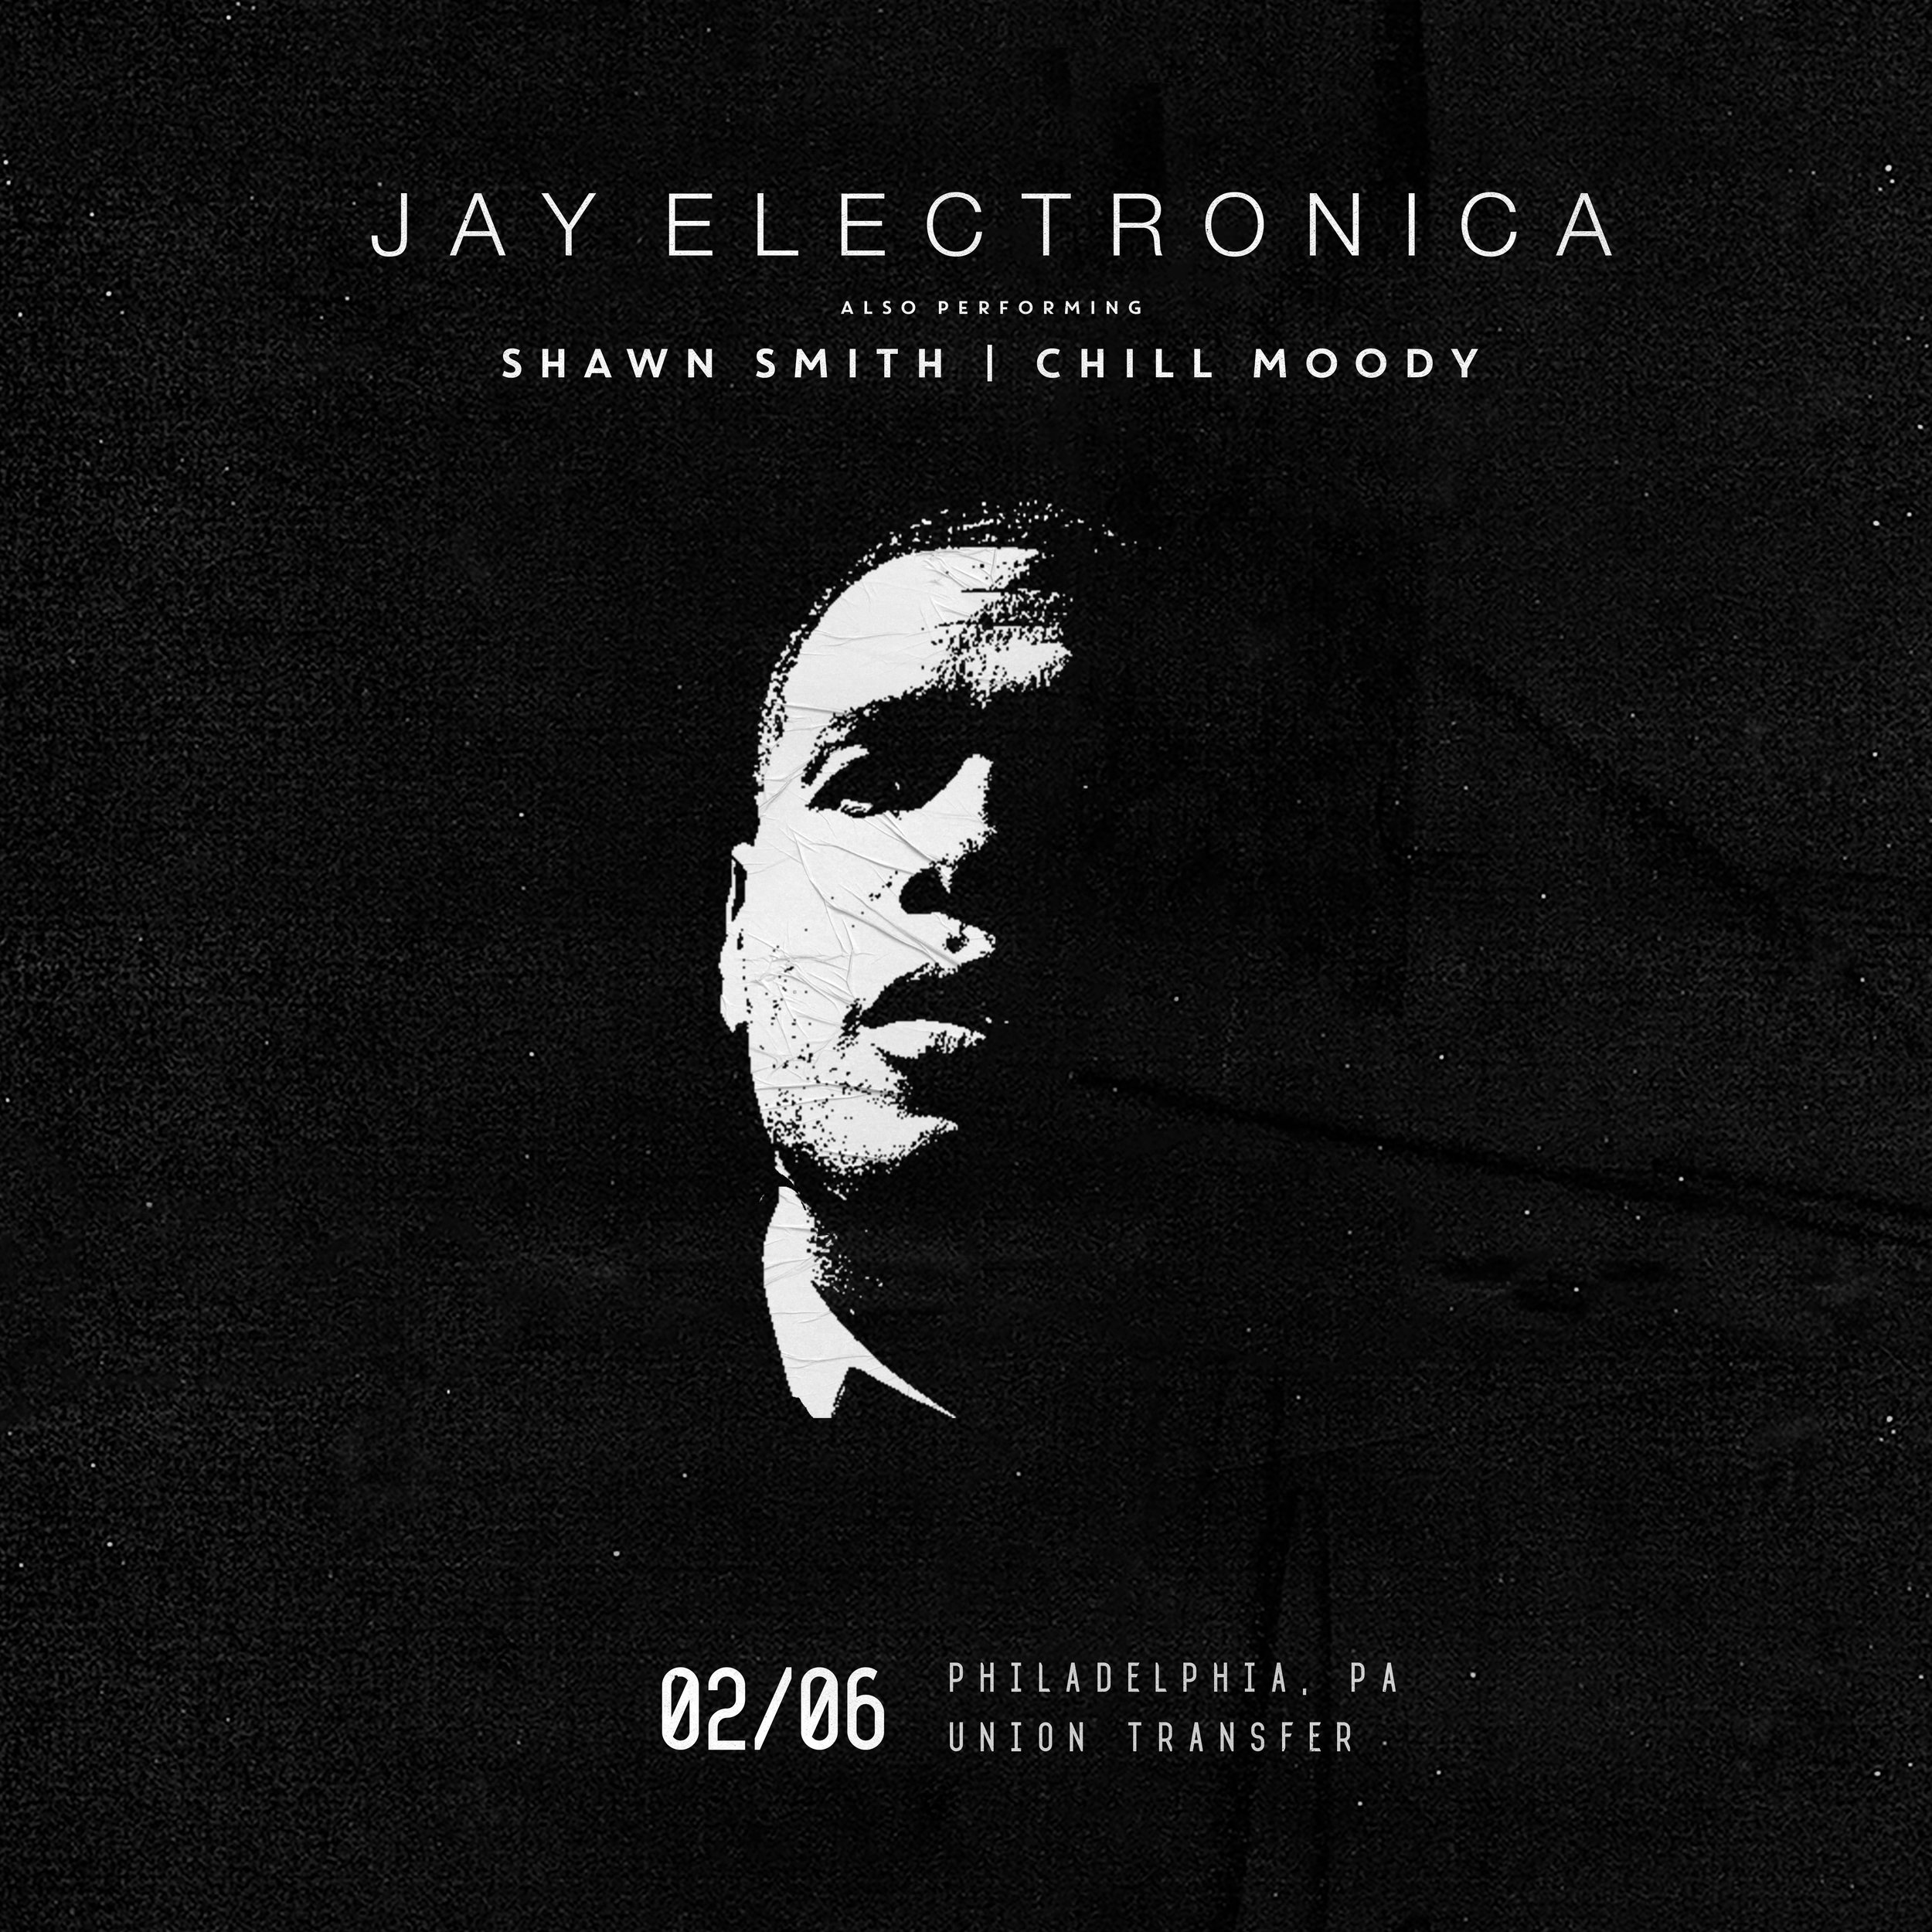 Jay Electronica x Shawn Smith x Chill MoodyTuesday 2-6-18 -Doors: 7:30 PM Show: 8:30 PMAll Ages$25 - $30Union Transfer1026 Spring Garden St.Philadelphia, PA -